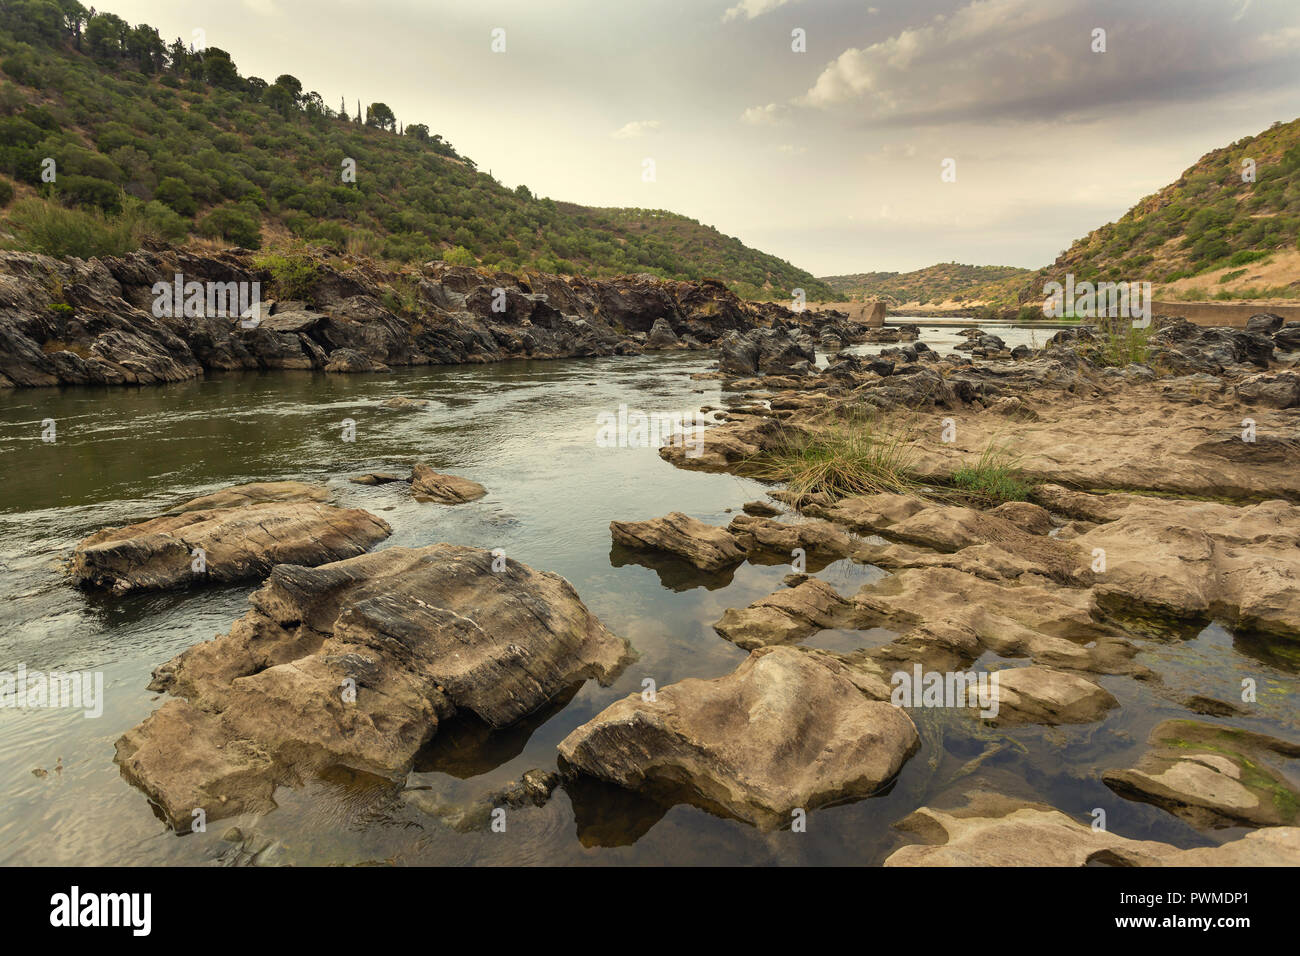 Course of the Guadiana River with its calm waters between the mountains and the rocks of the riverbed, with the cloudy sky in the background - Stock Image